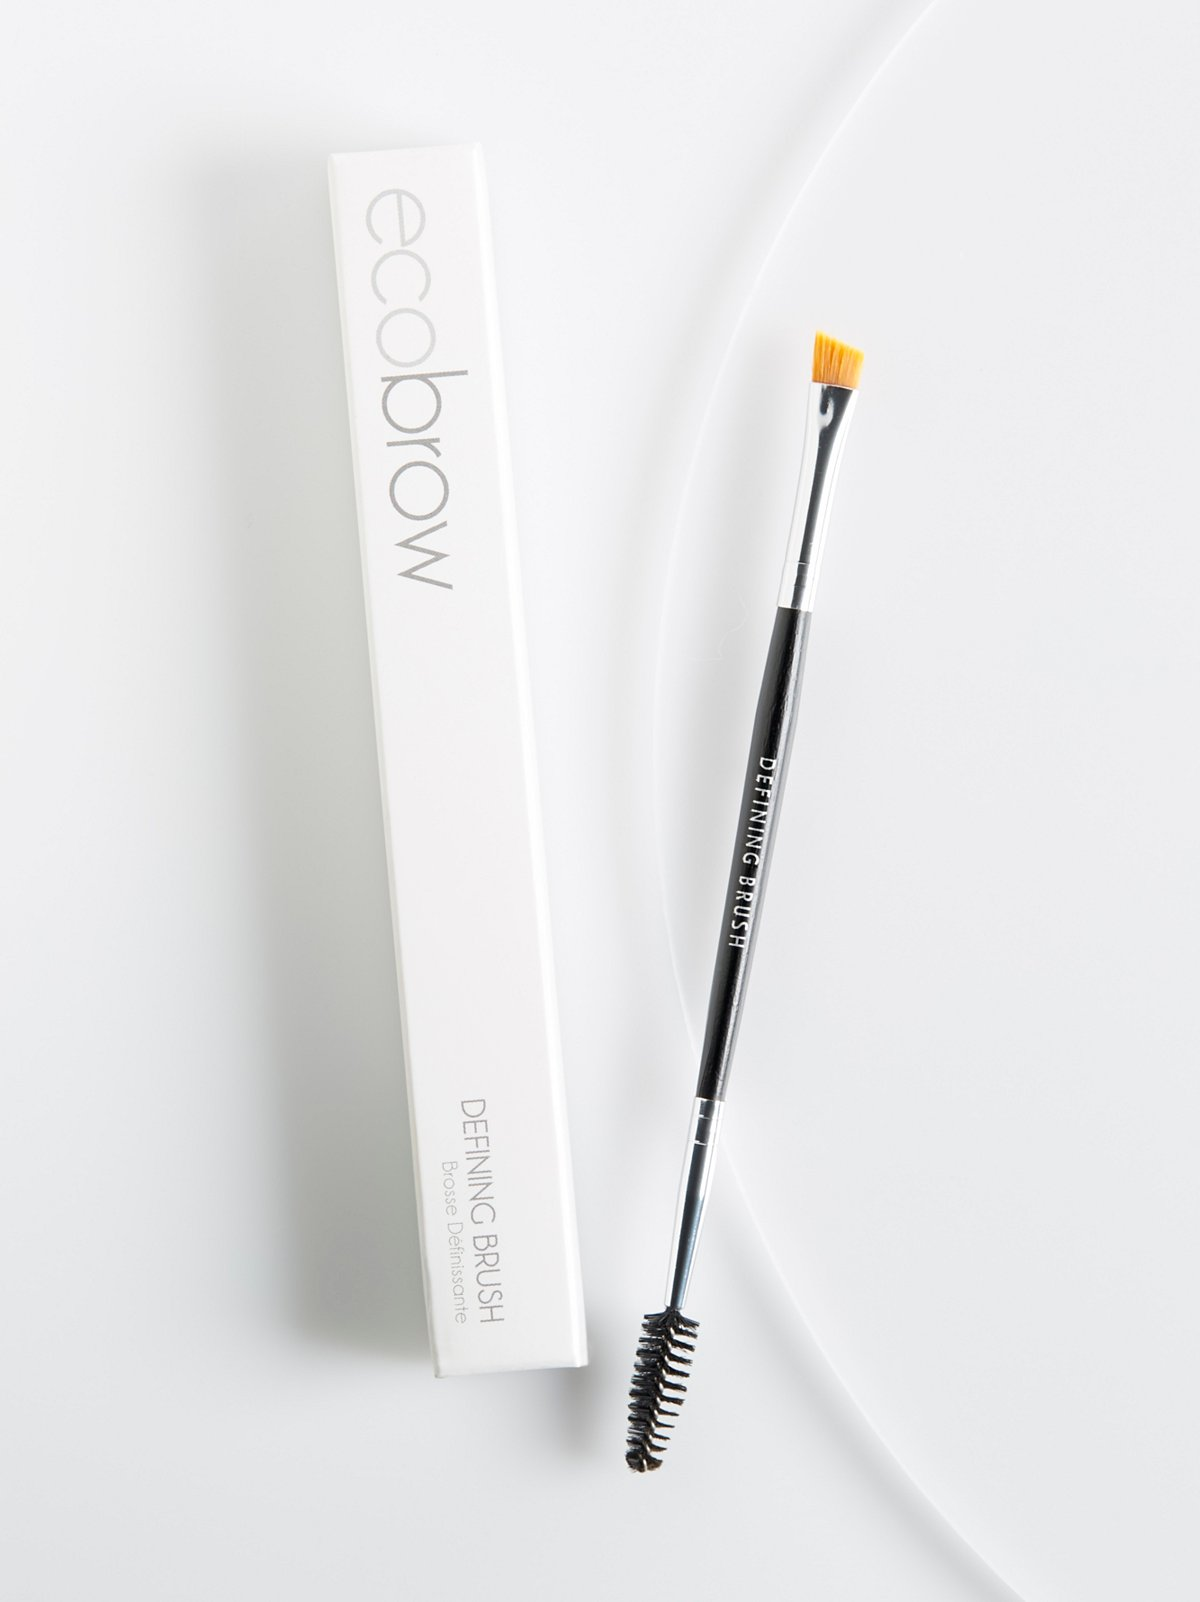 Ecobrow Defining Brush